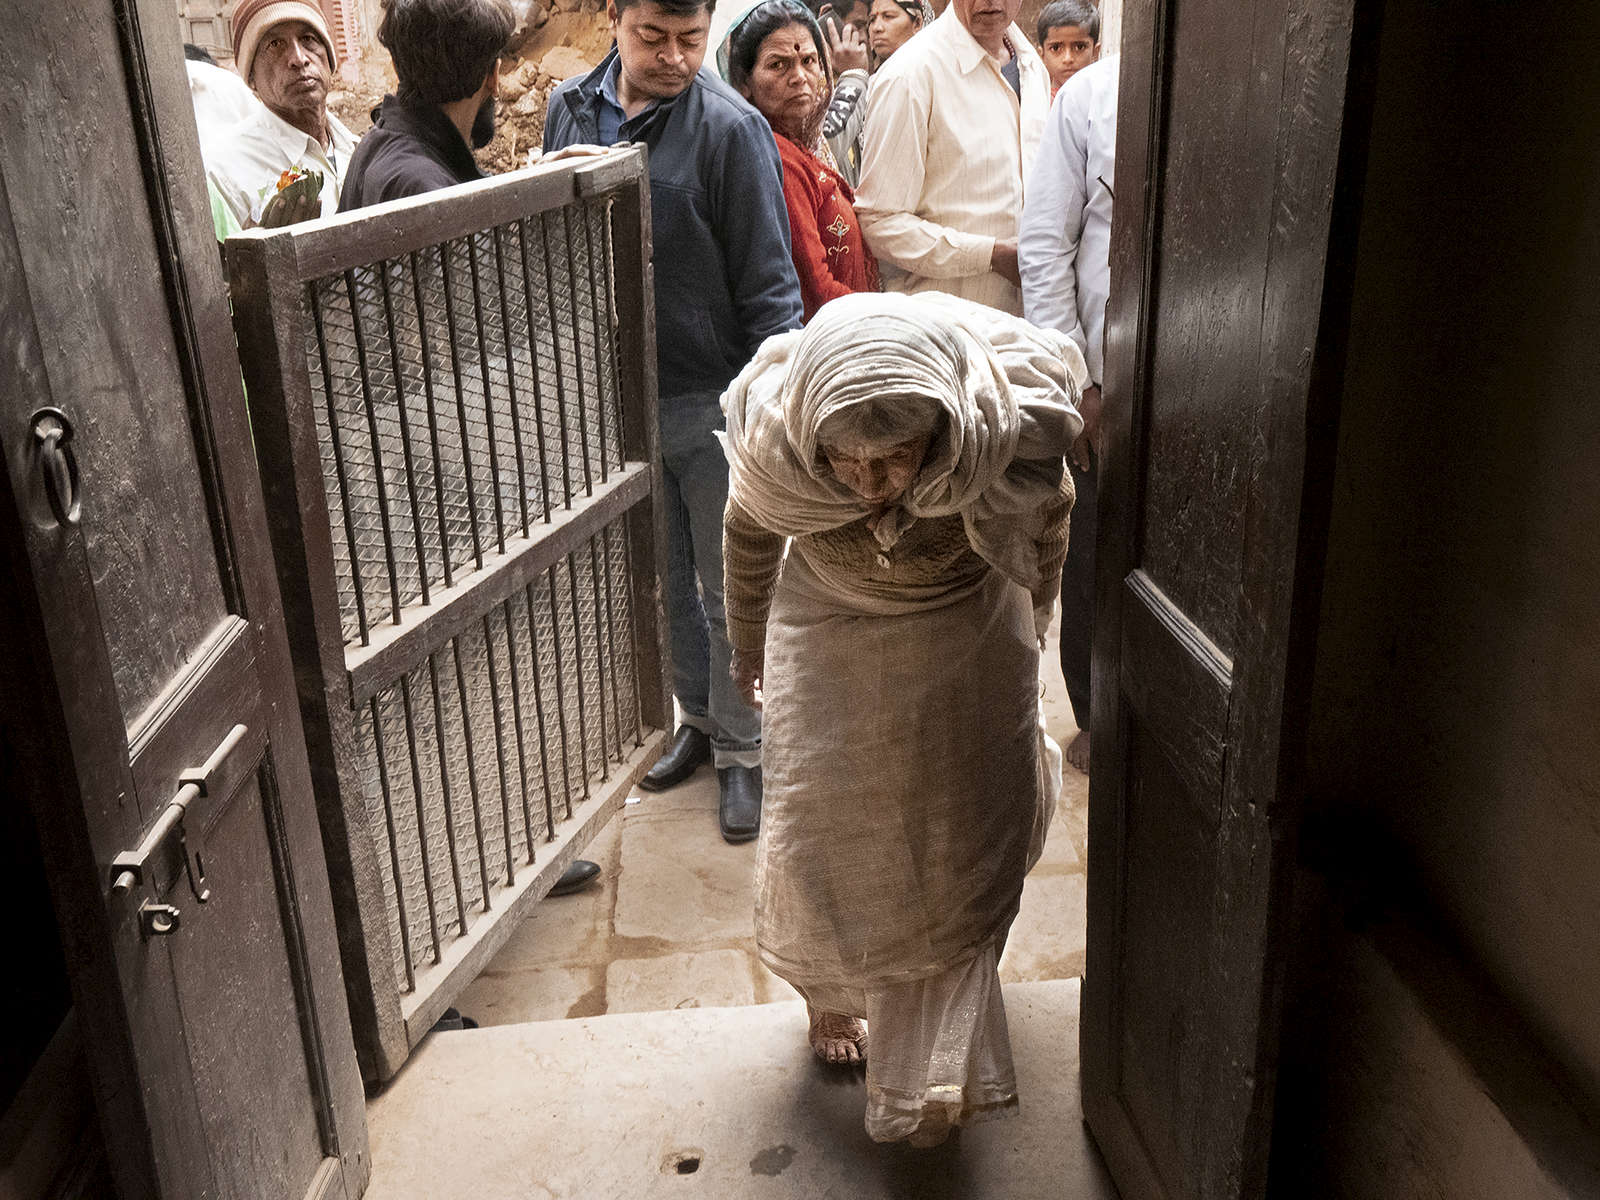 Ratan Devi Mata, 82 years old, enters Birla ashram in Varanasi, India on January 05, 2019. Ratan is originally from Nepal. After her husband left her for another woman a day following their wedding, she tried to live with her in-laws, but daily fighting motivated her to join the ashram instead. Ratan believes she will attain Moksha (release from the cycle of rebirth) if she dies here. She receives a monthly pension of 2,000 rupees from Sulabh International.